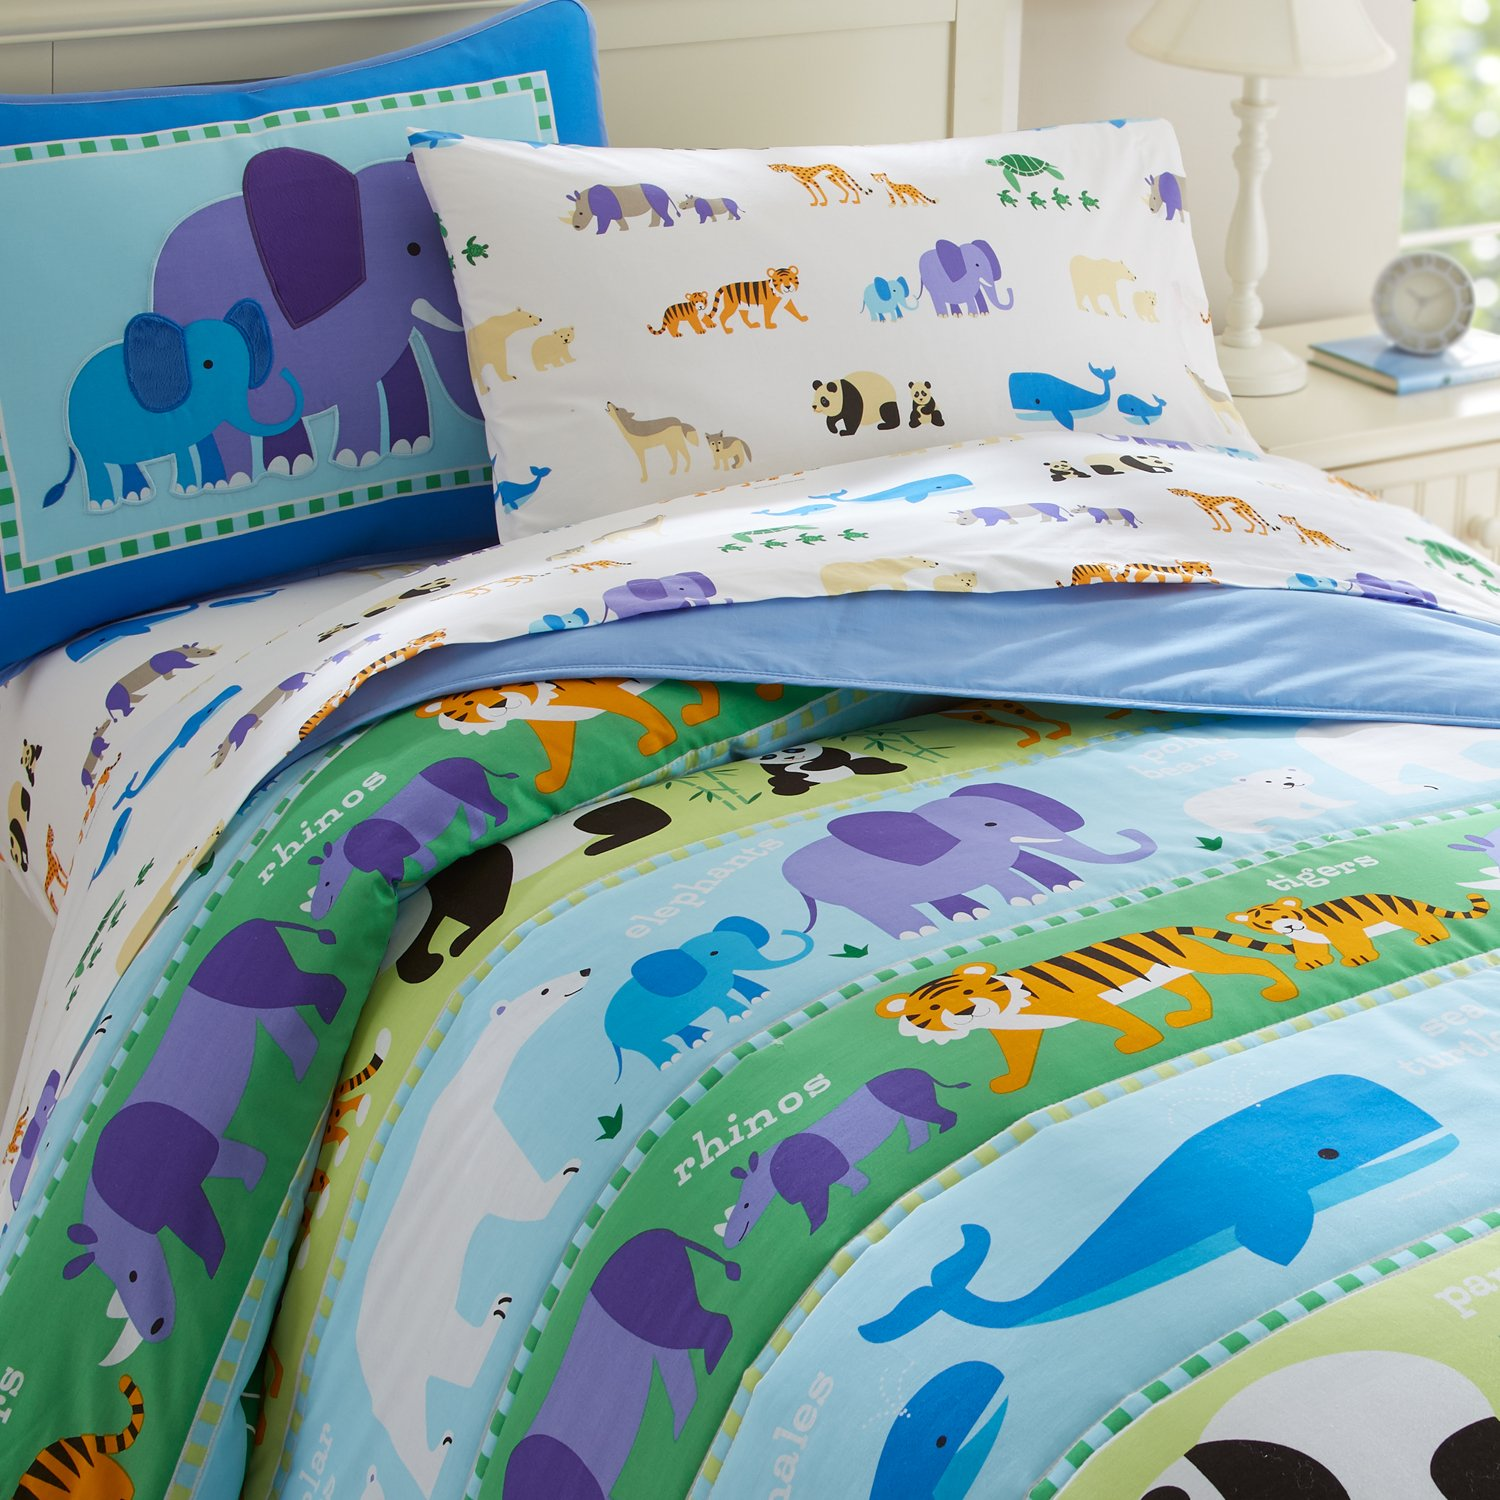 Olive Kids Design Coordinates with Other Room D/écor 100/% Cotton Twin Comforter with Embroidered Details Endangered Animals 11416 Includes One Matching Sham Wildkin Lightweight Twin Comforter Set